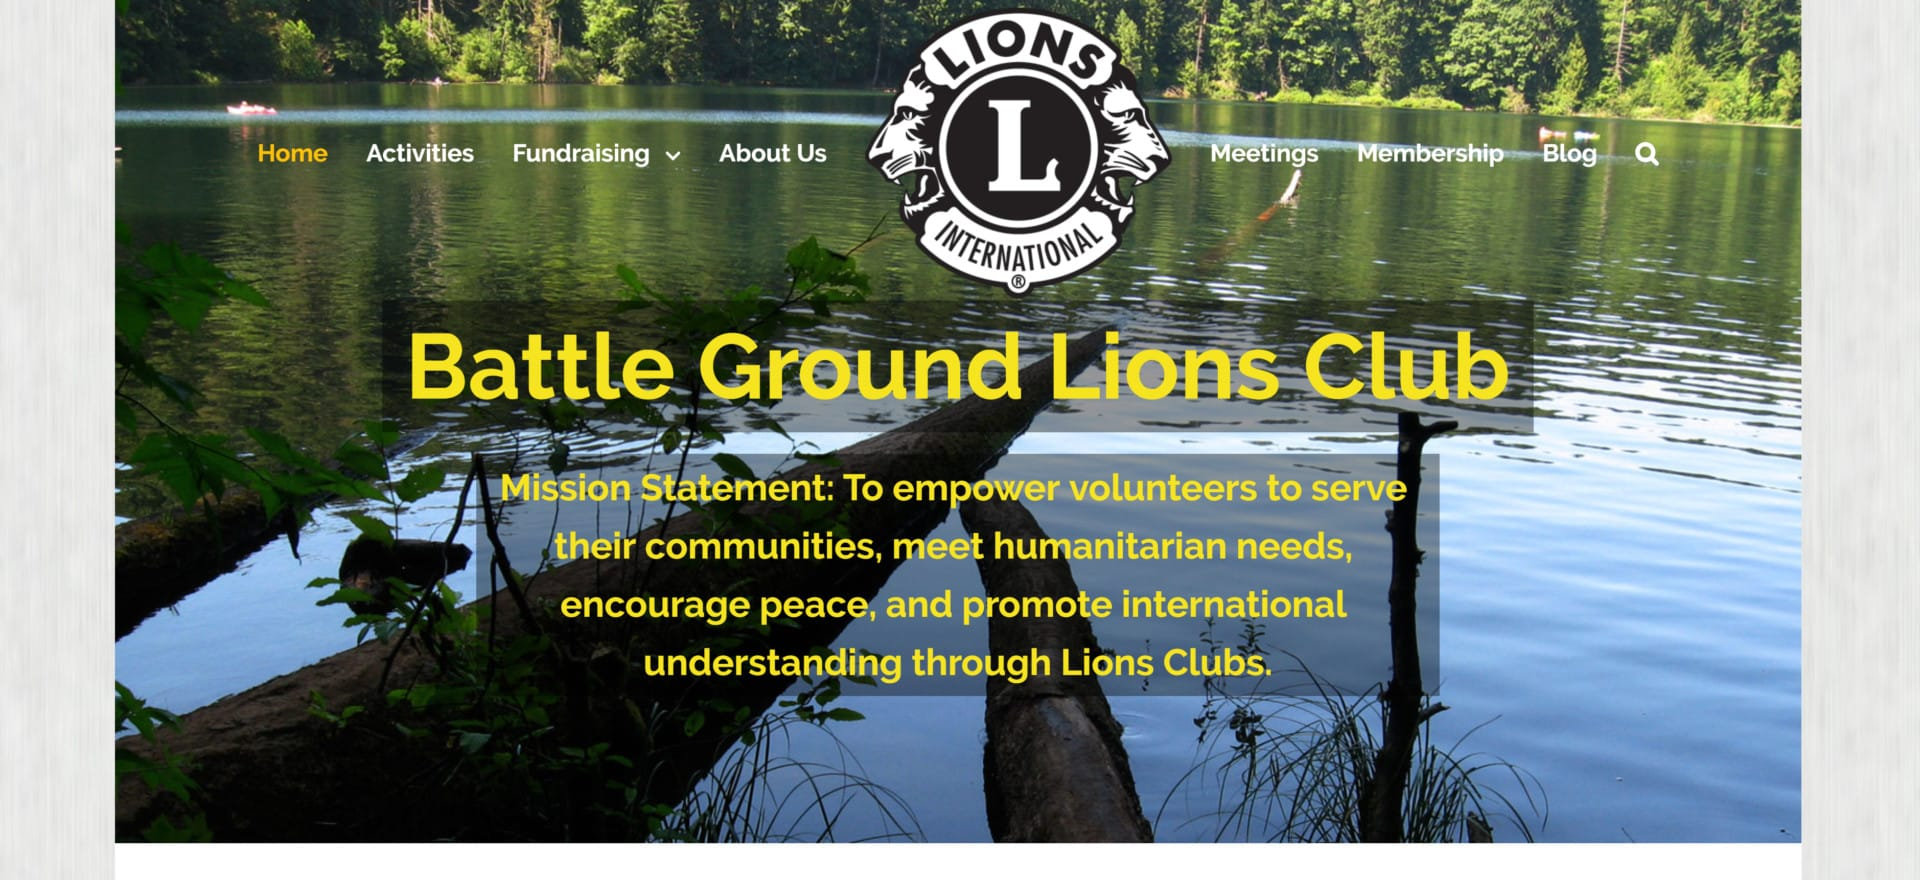 Battle Ground Lions